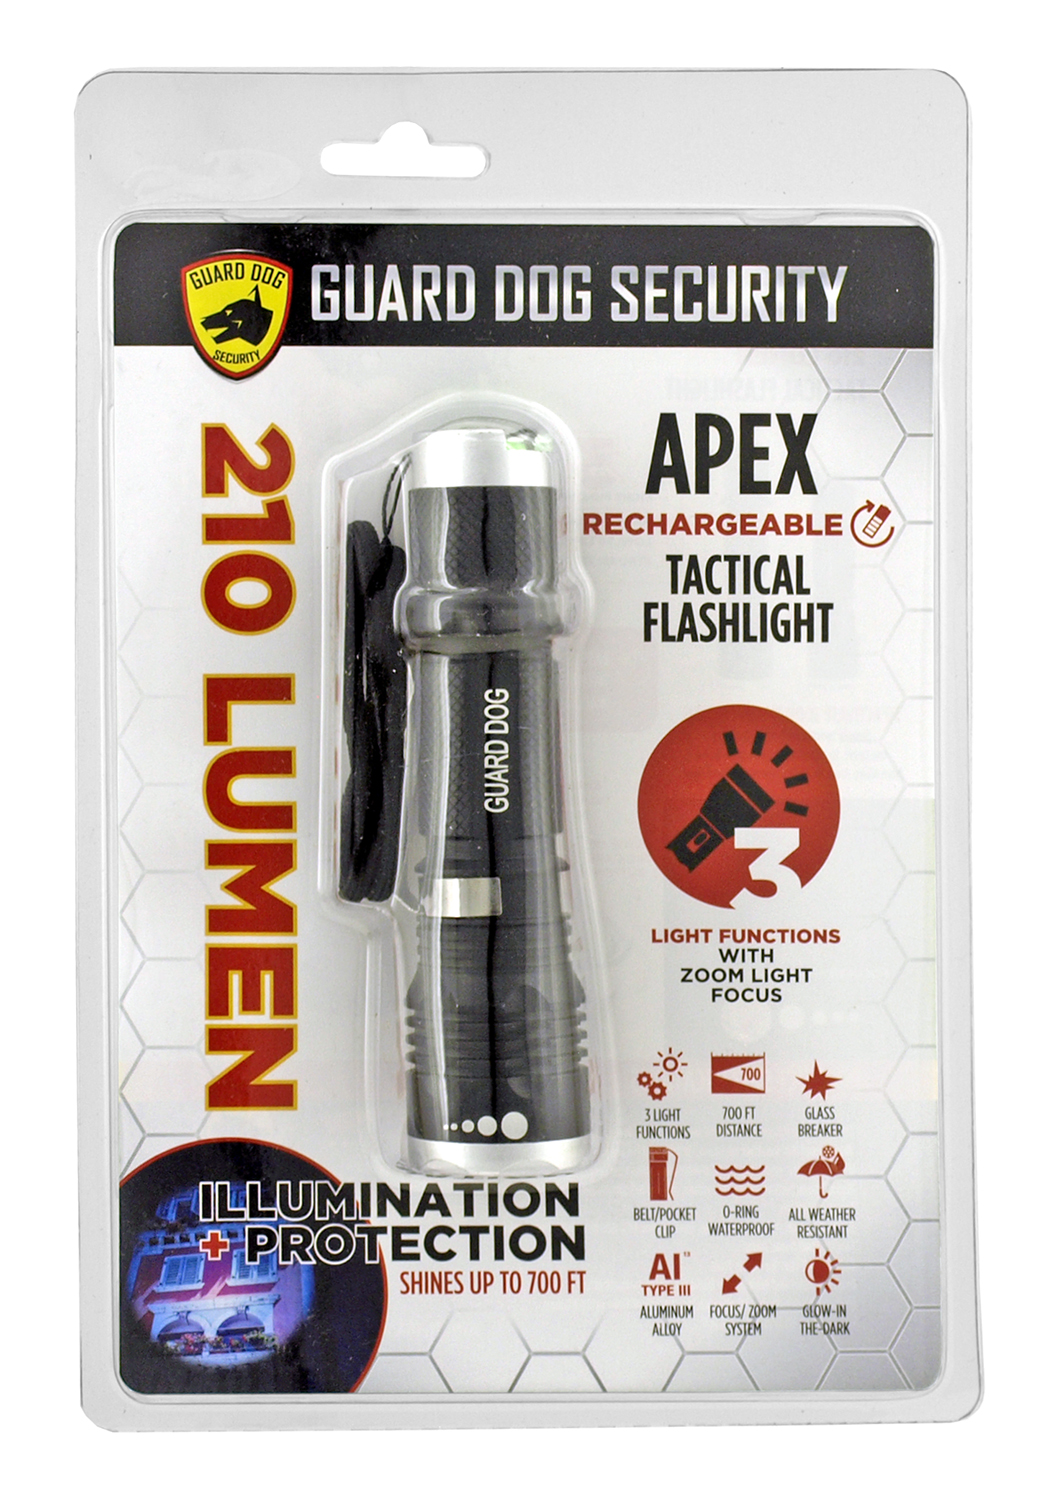 210 Lumen Apex Rechargeable Tactical Flashlight - Guard Dog Security